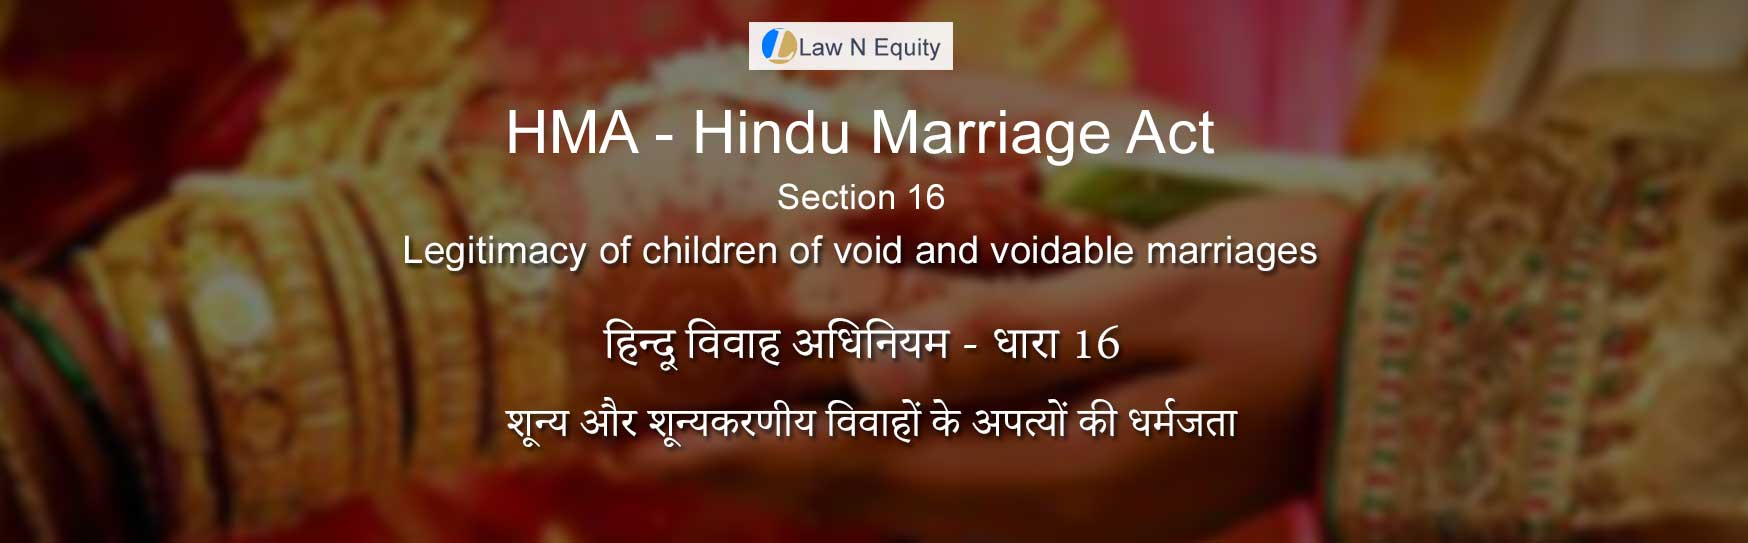 Hindu Marriage Act(HMA) Section 16